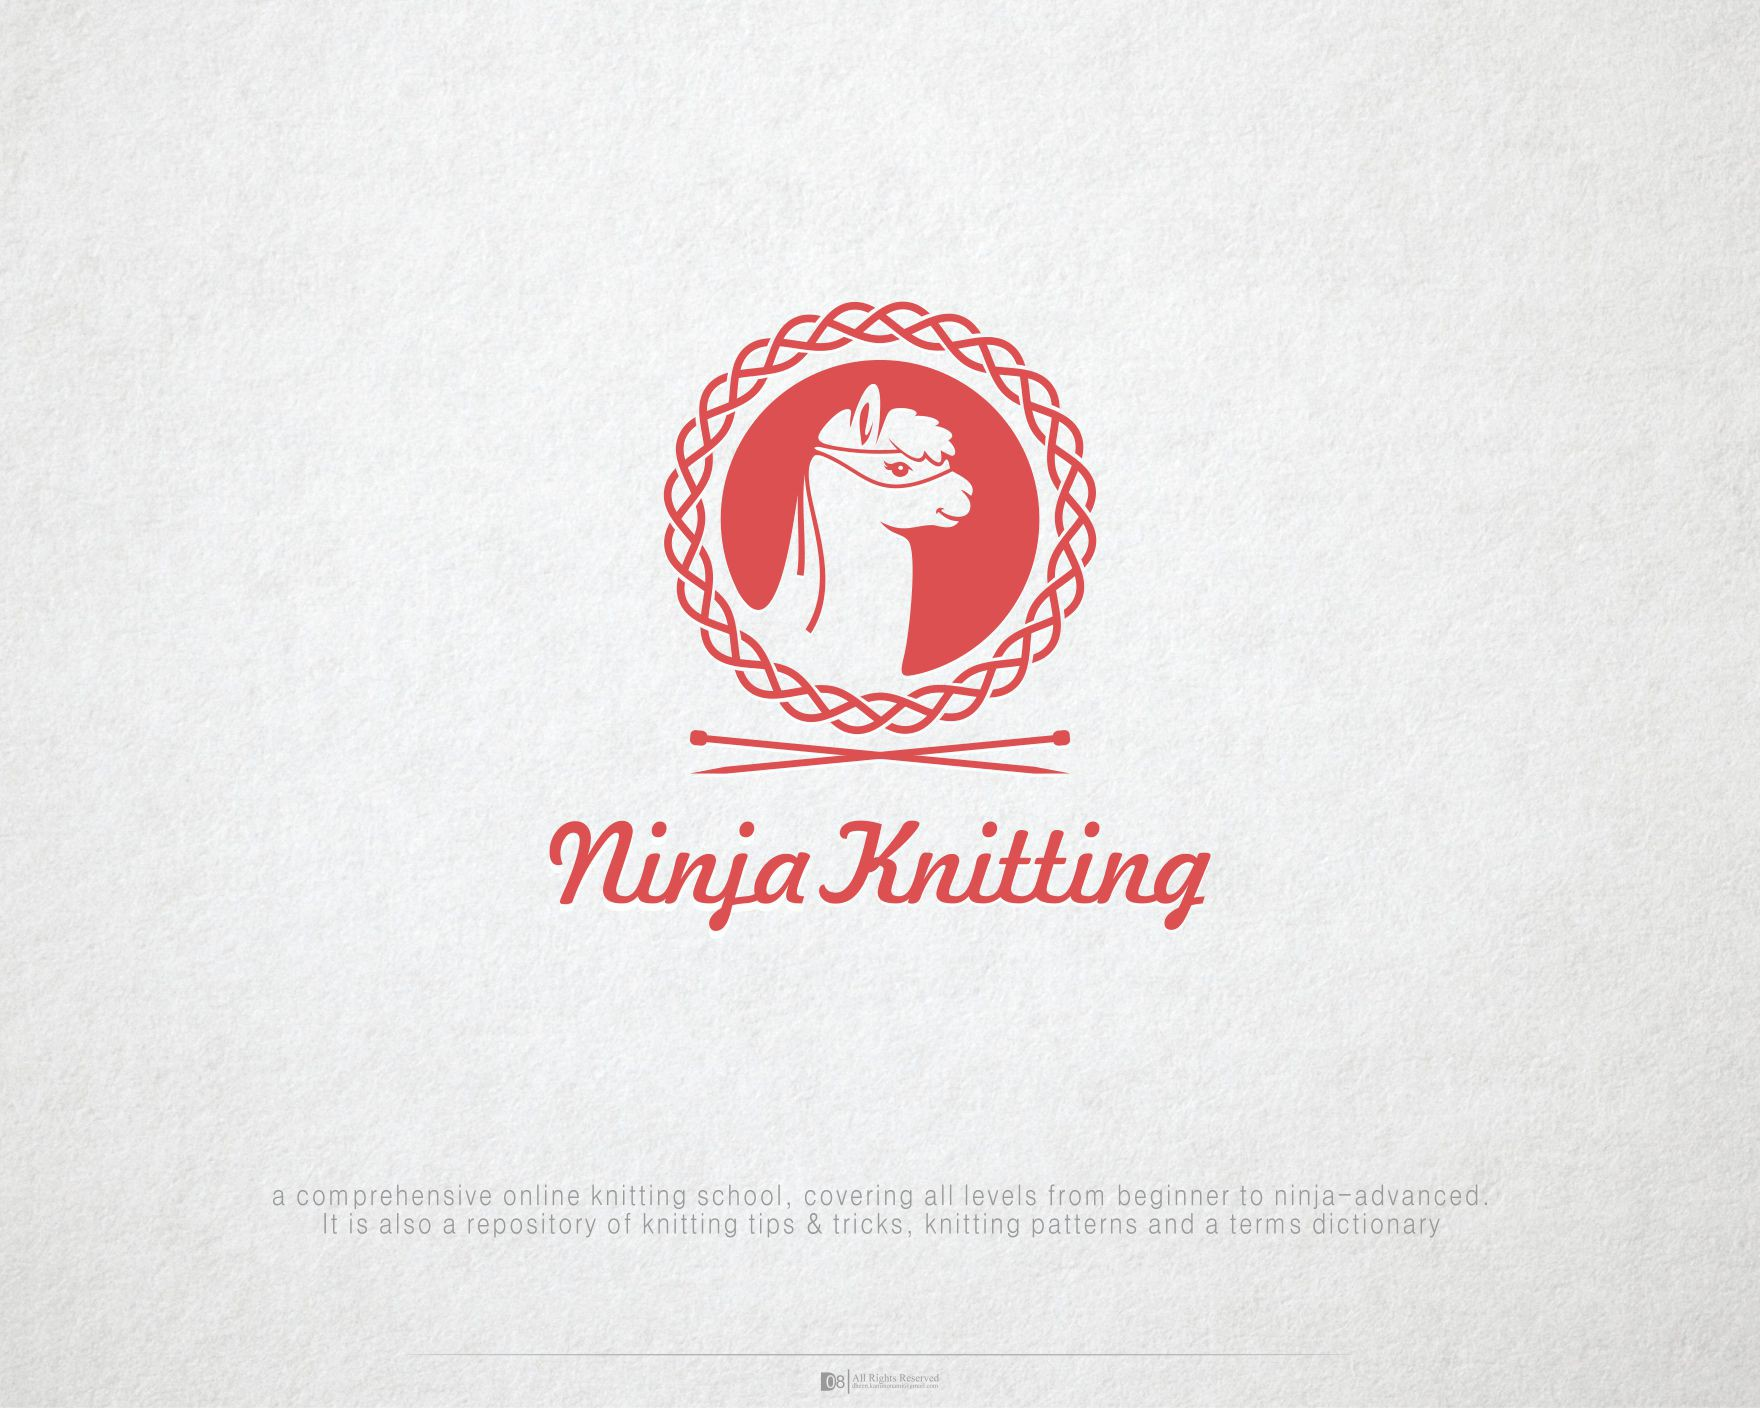 A New Face of Knitting! Create a clever logo for Ninja Knitting: online knitting school